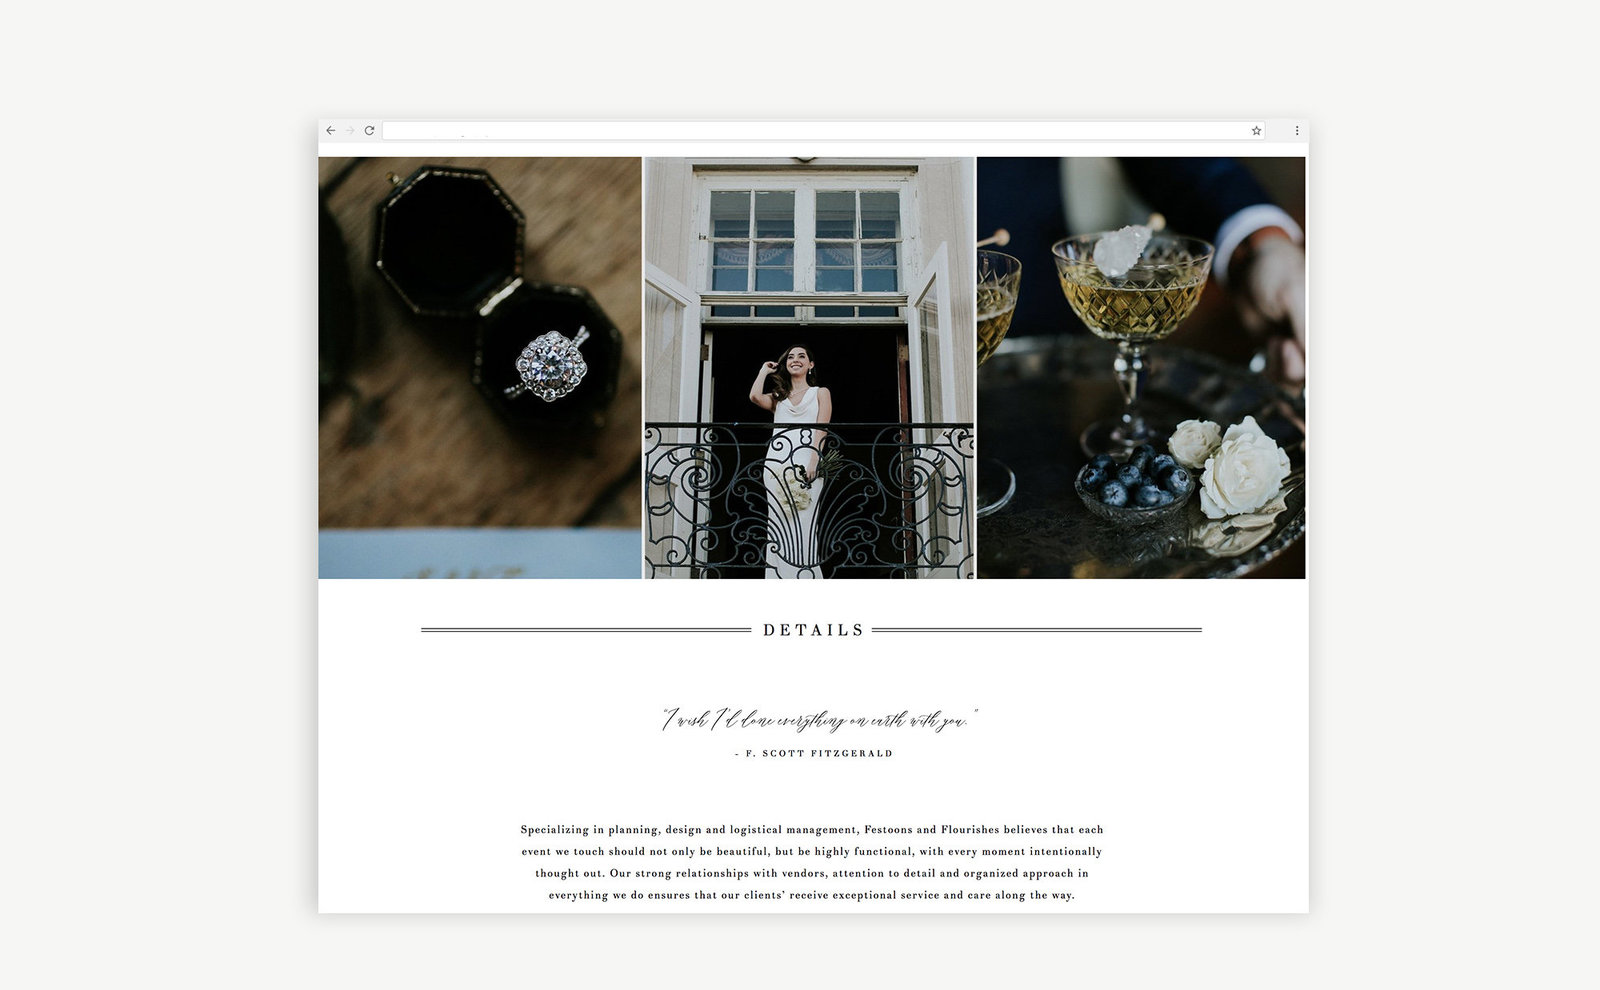 showit-website-branding-for-wedding-businesses-festoons-03